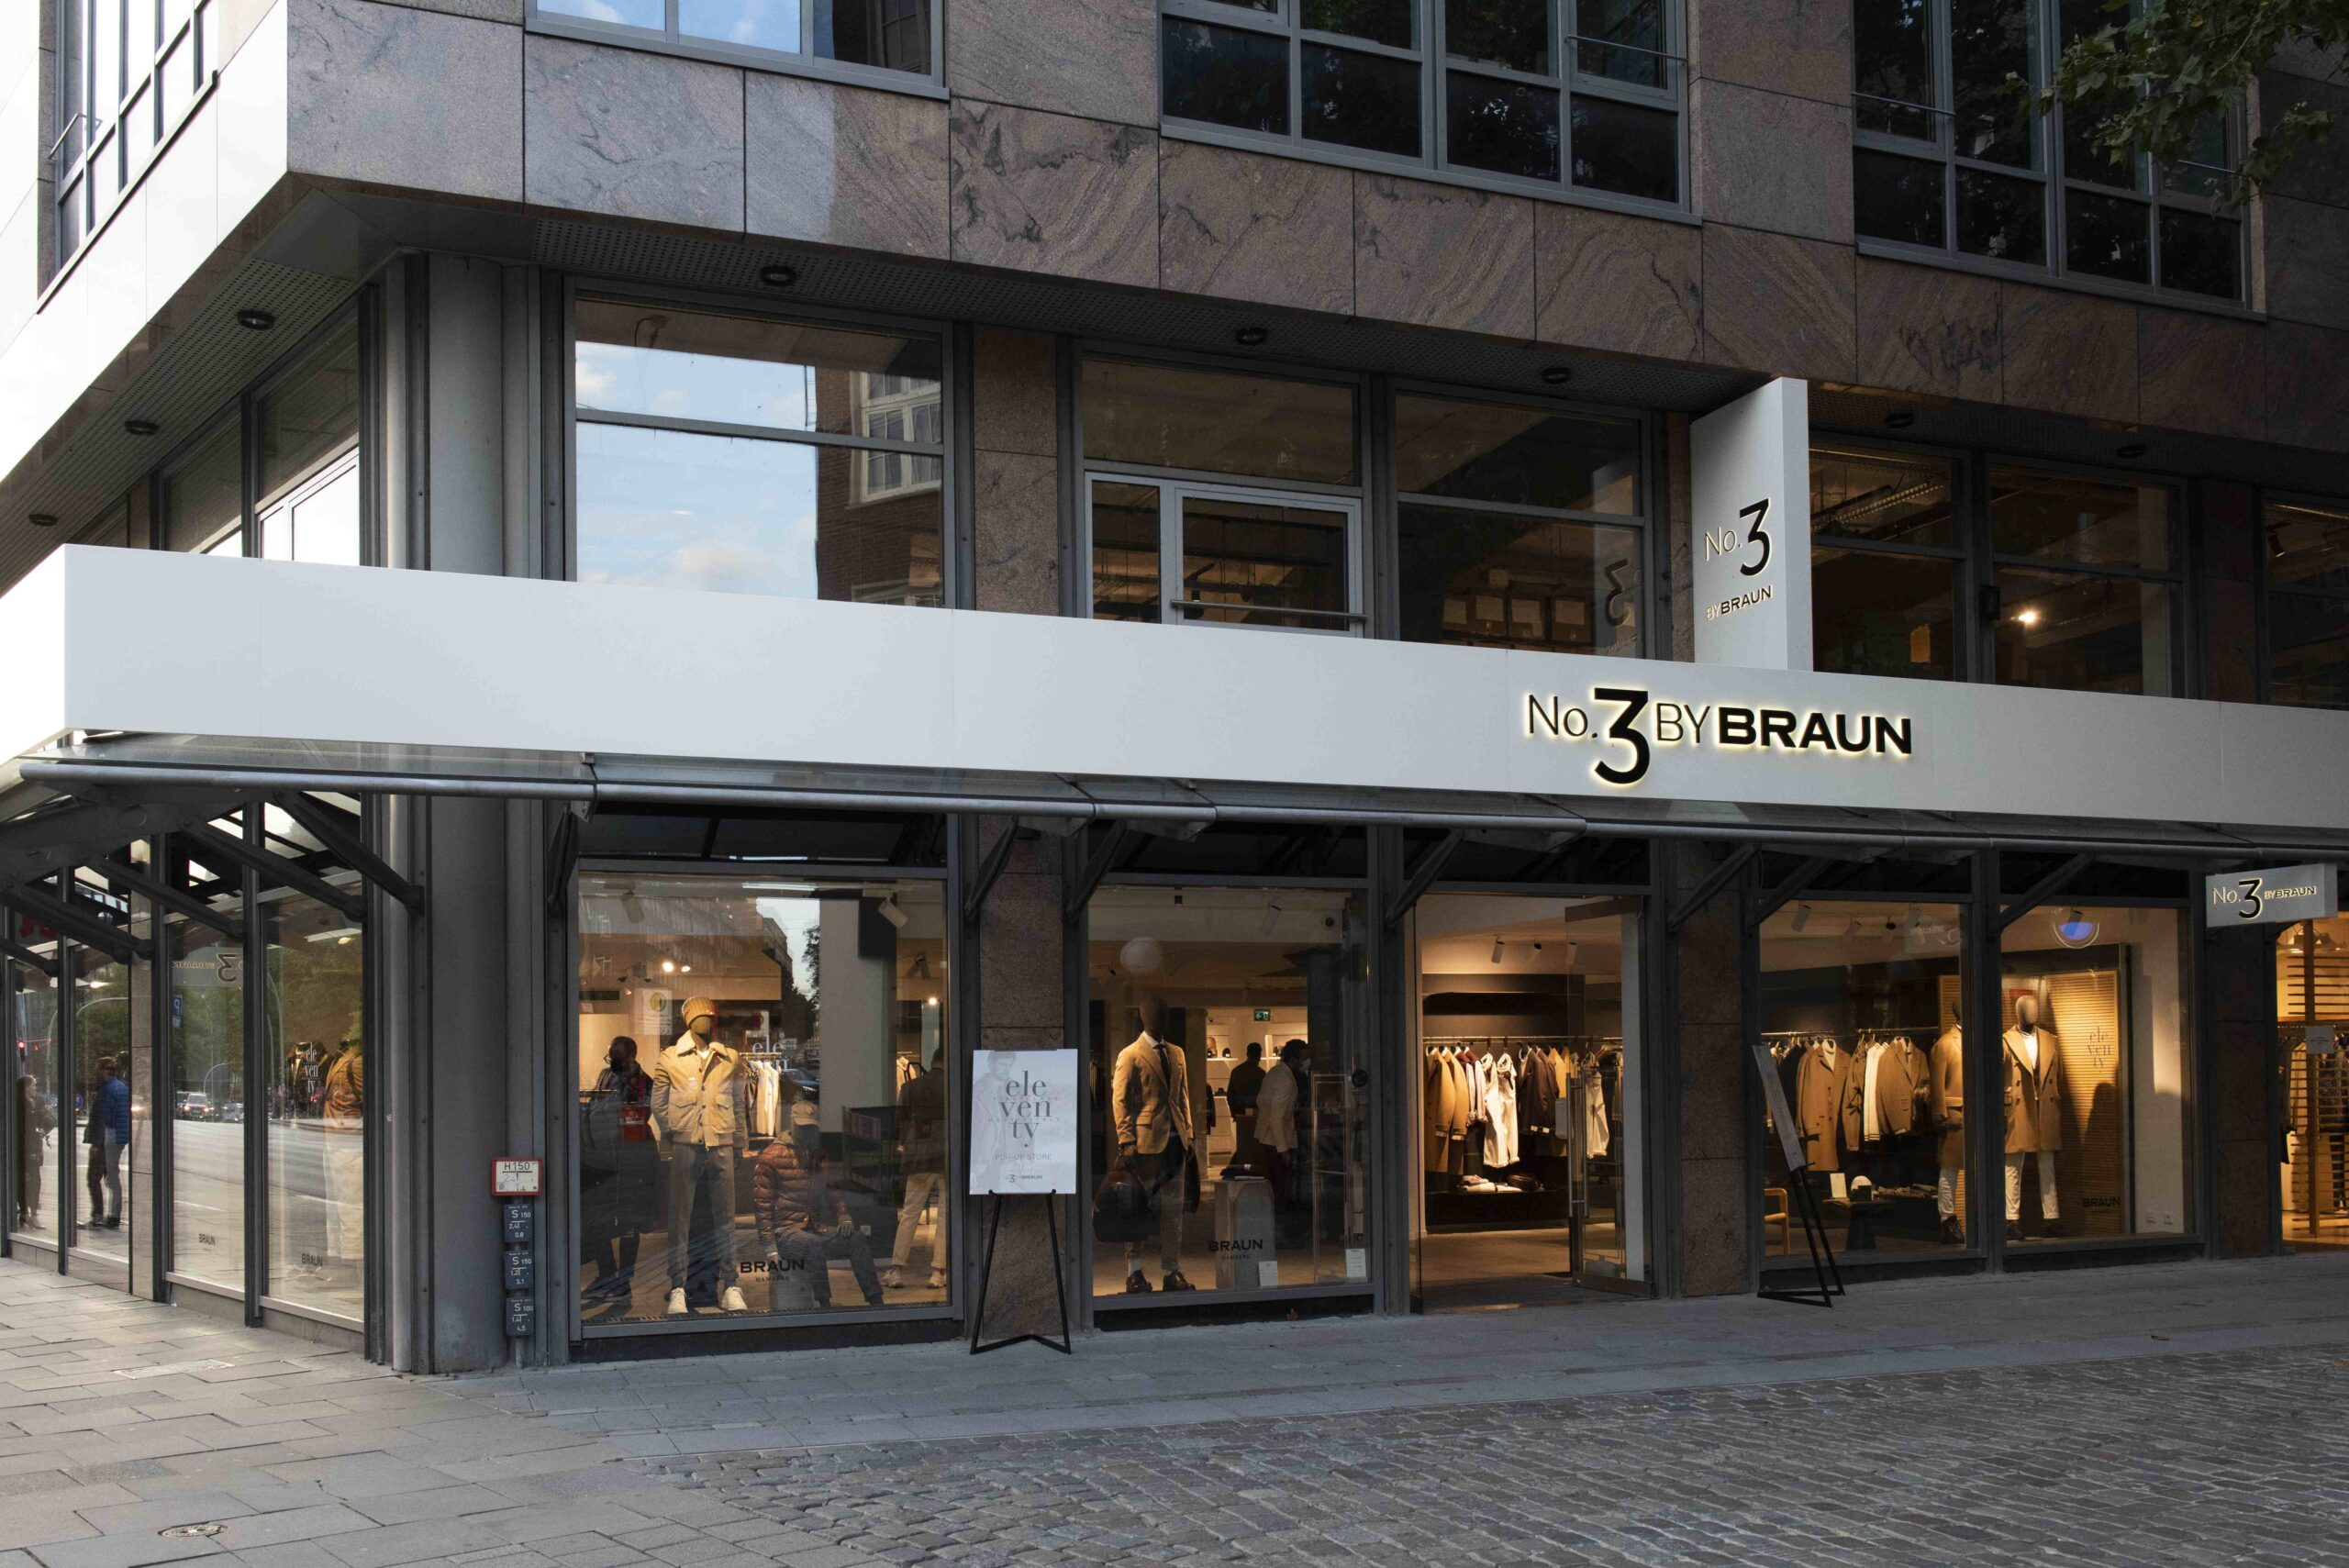 Eleventy apre un pop-up nel nuovo concept store No. 3 by BRAUN